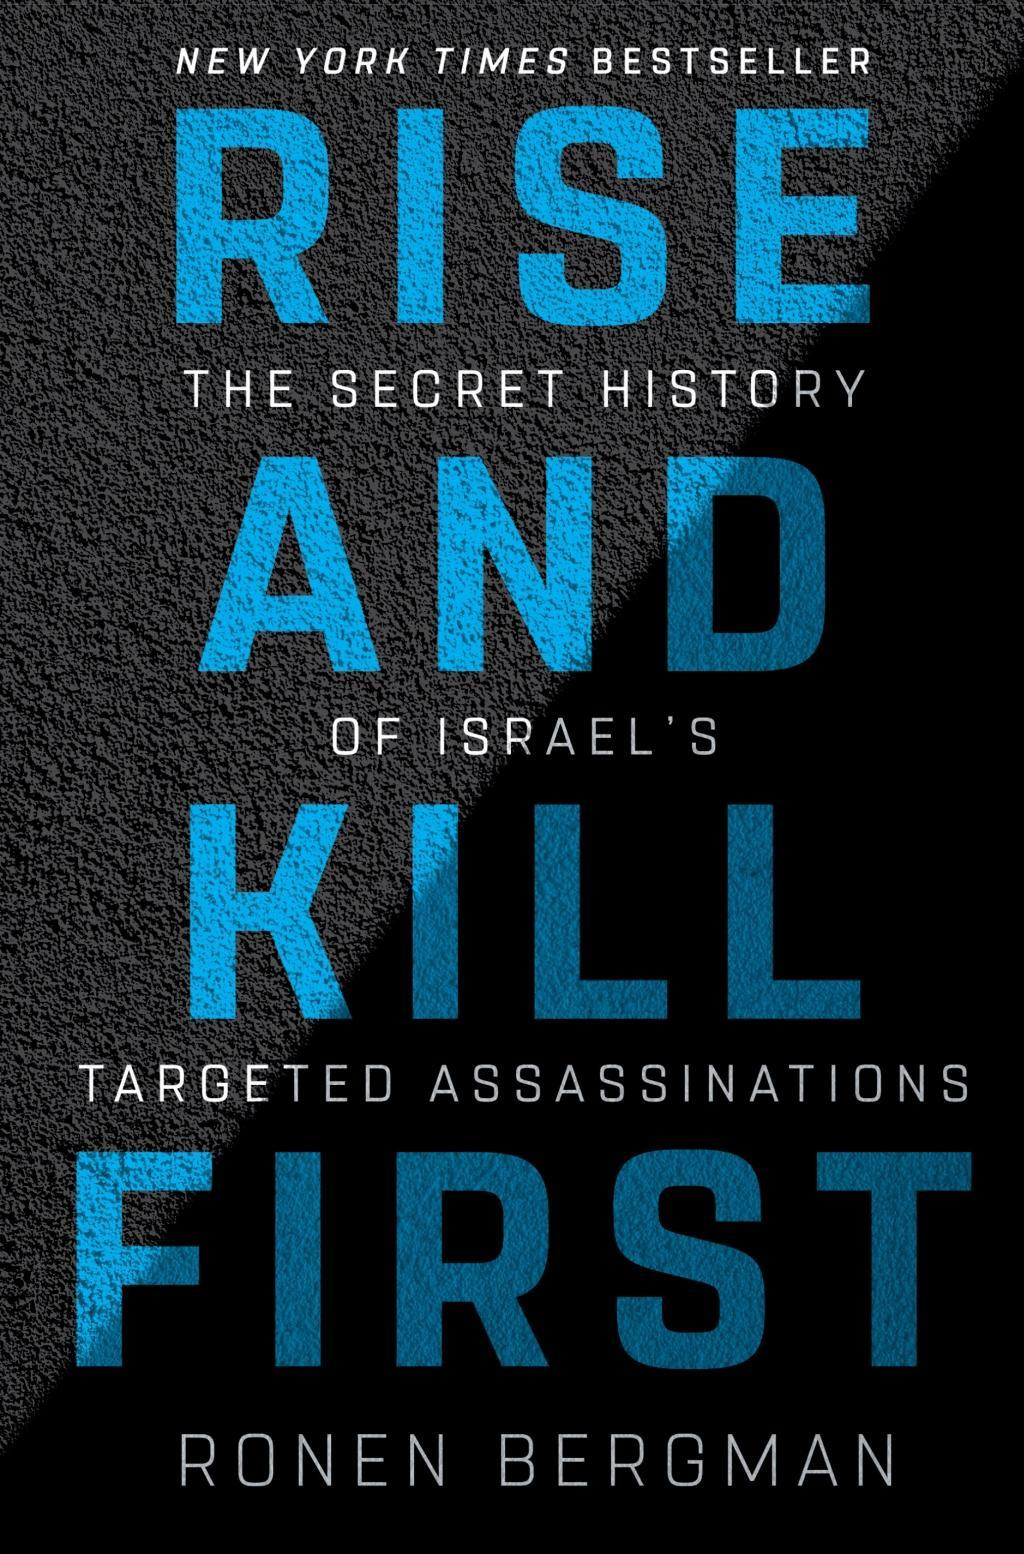 Rise and Kill FirstThe Secret History of Israel's Targeted Assassi... by Ronen Bergman, ISBN: 9781400069712